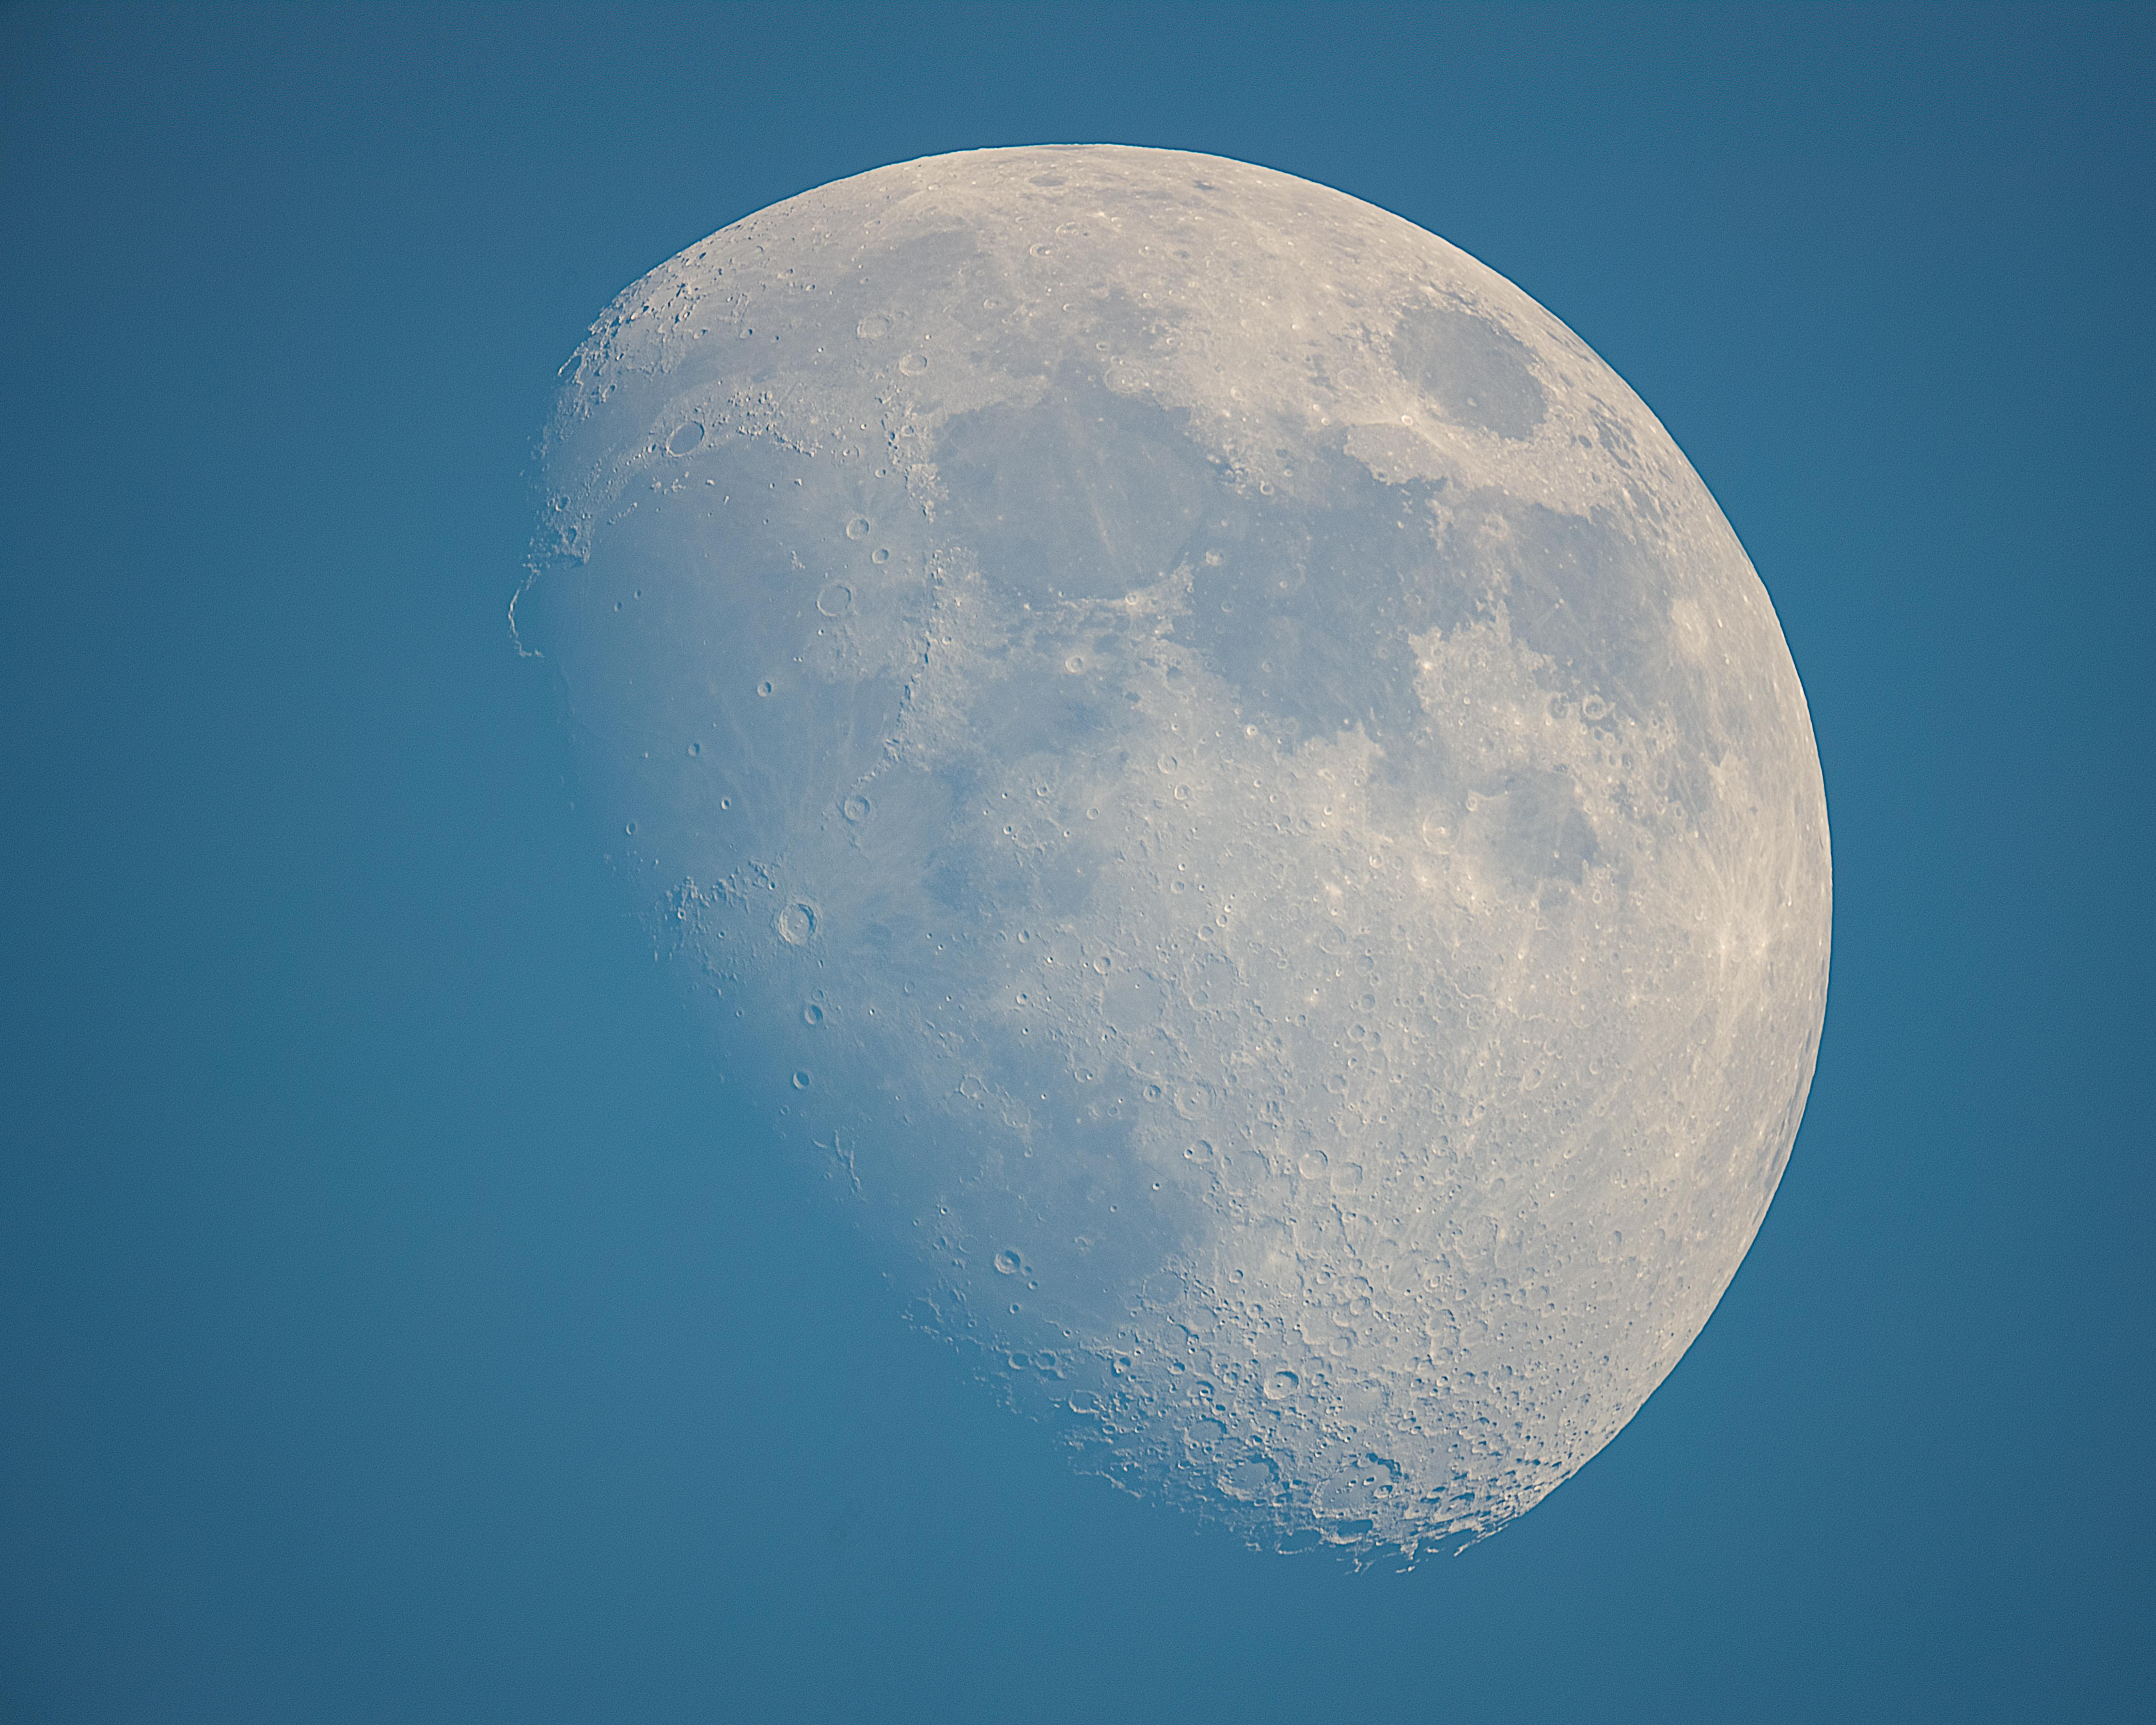 Today's 75.8% waxing gibbous Moon with the Golden Handle during daylight